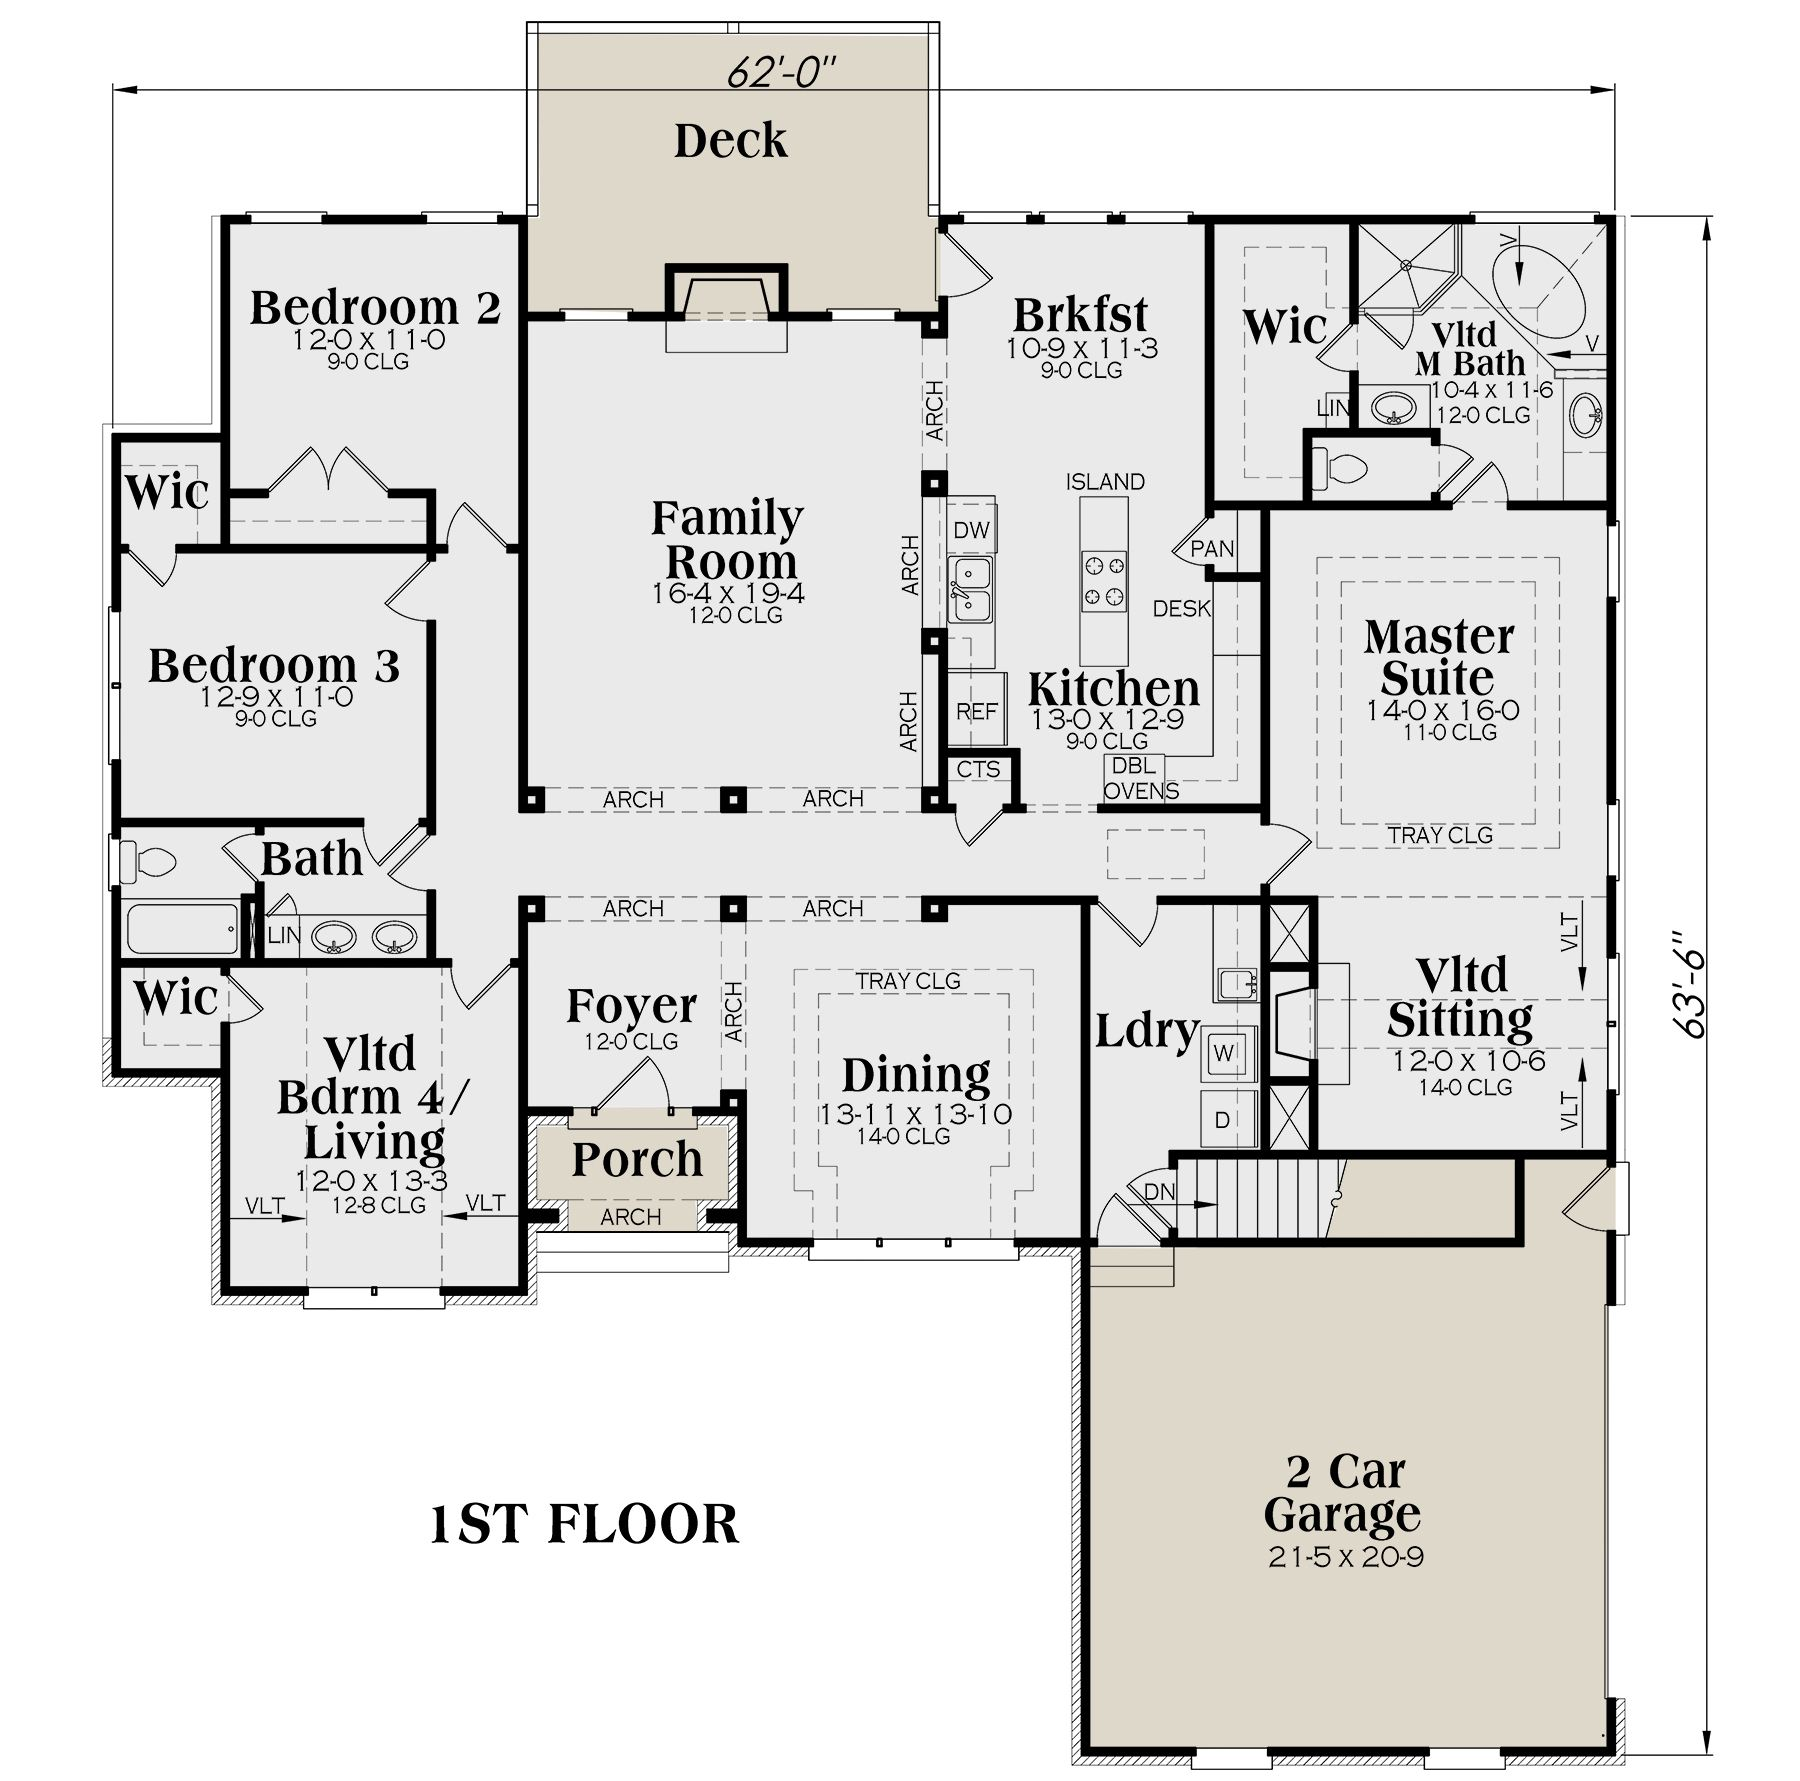 House Plan 009 00035 European Plan 2 406 Square Feet 4 Bedrooms 2 Bathrooms European Plan House Plans Floor Plans